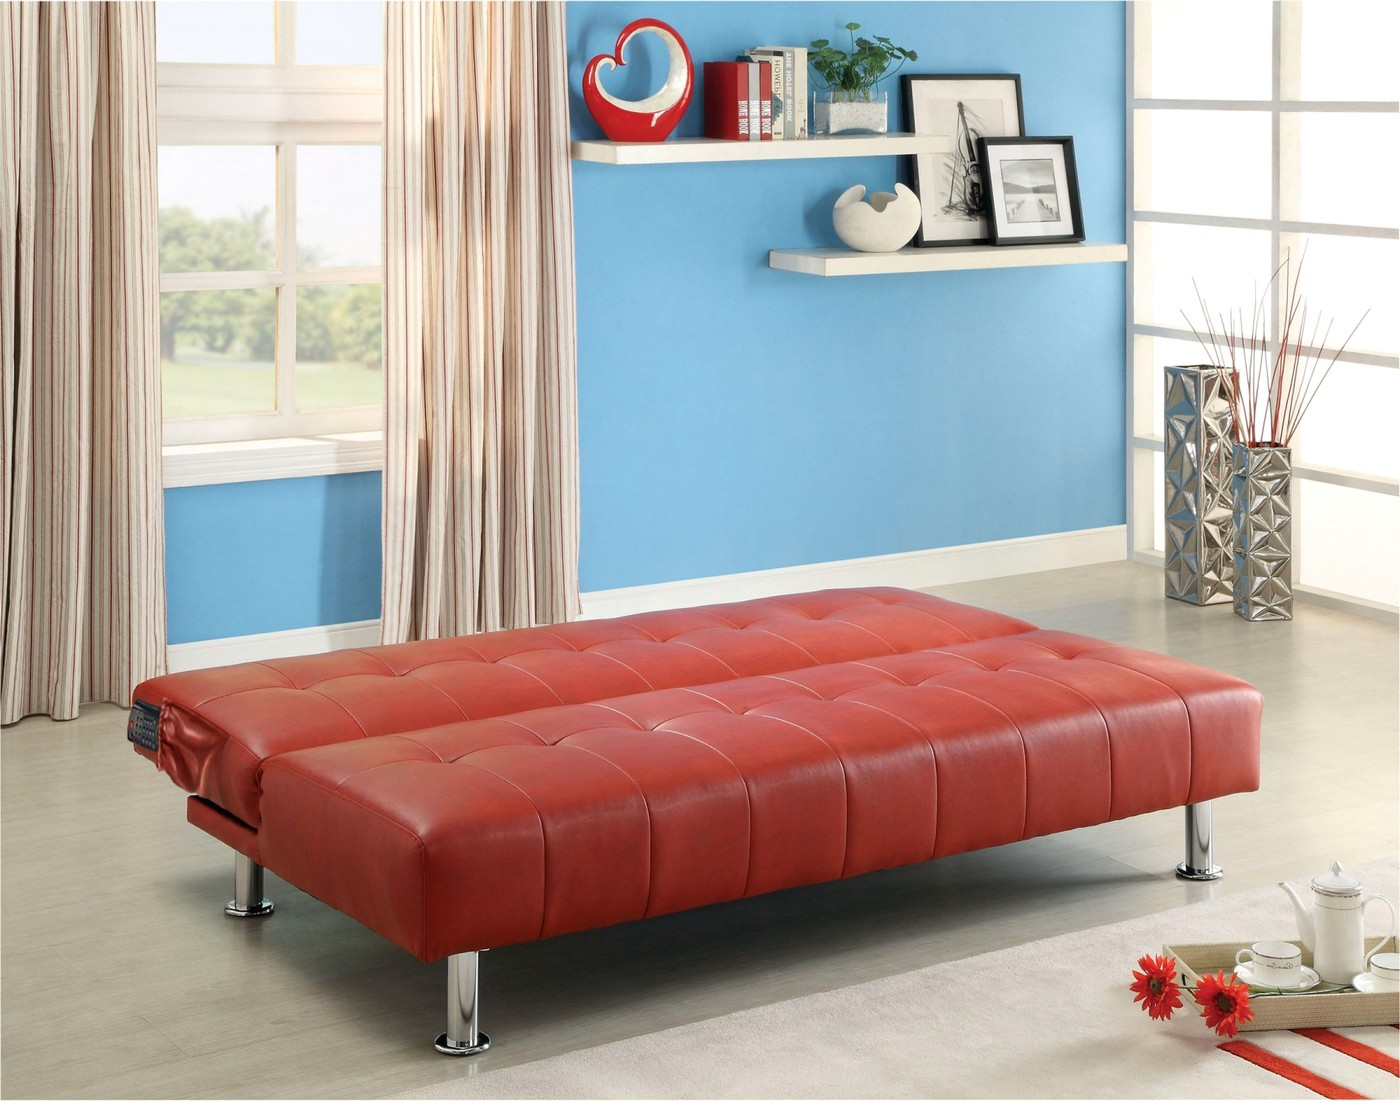 Details about Maya Tufted Red Leatherette Futon Sofabed with Chrome Finish